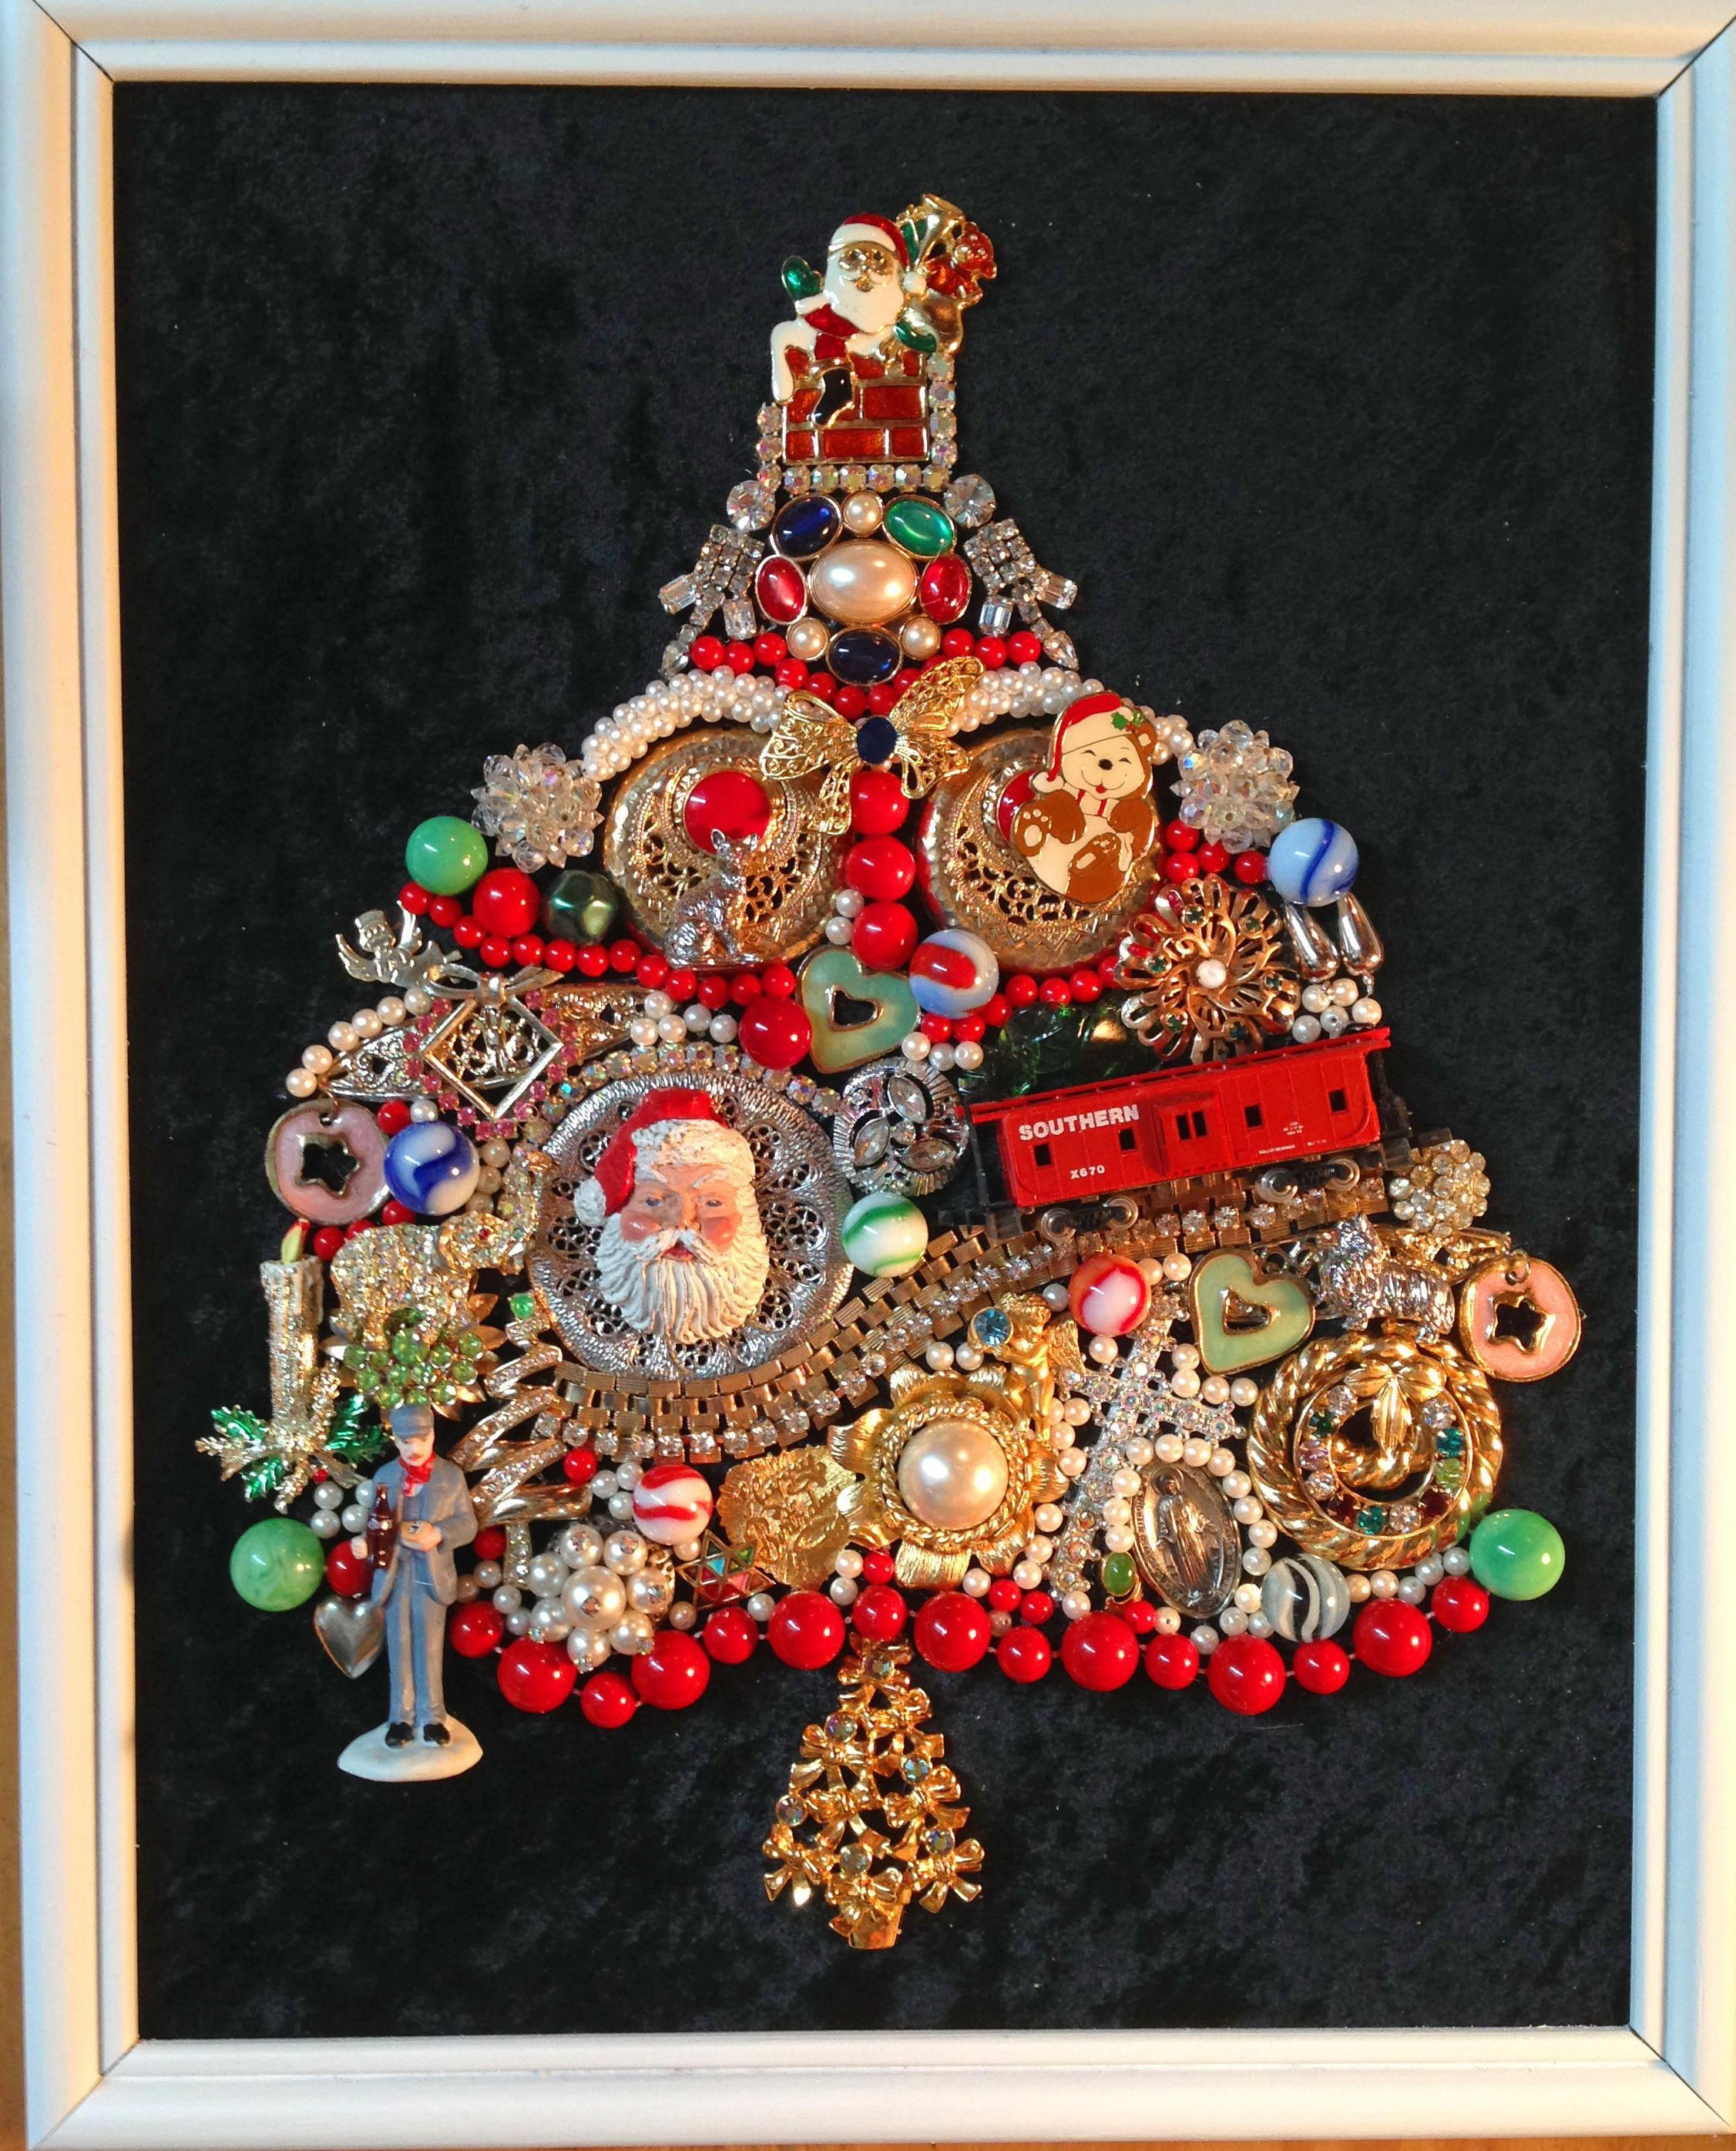 Sold Whimsical Framed Train Christmas Tree Using Vintage Jewelry Marbles Toy Trink Vintage Jewelry Repurposed Jeweled Christmas Trees Vintage Jewelry Crafts